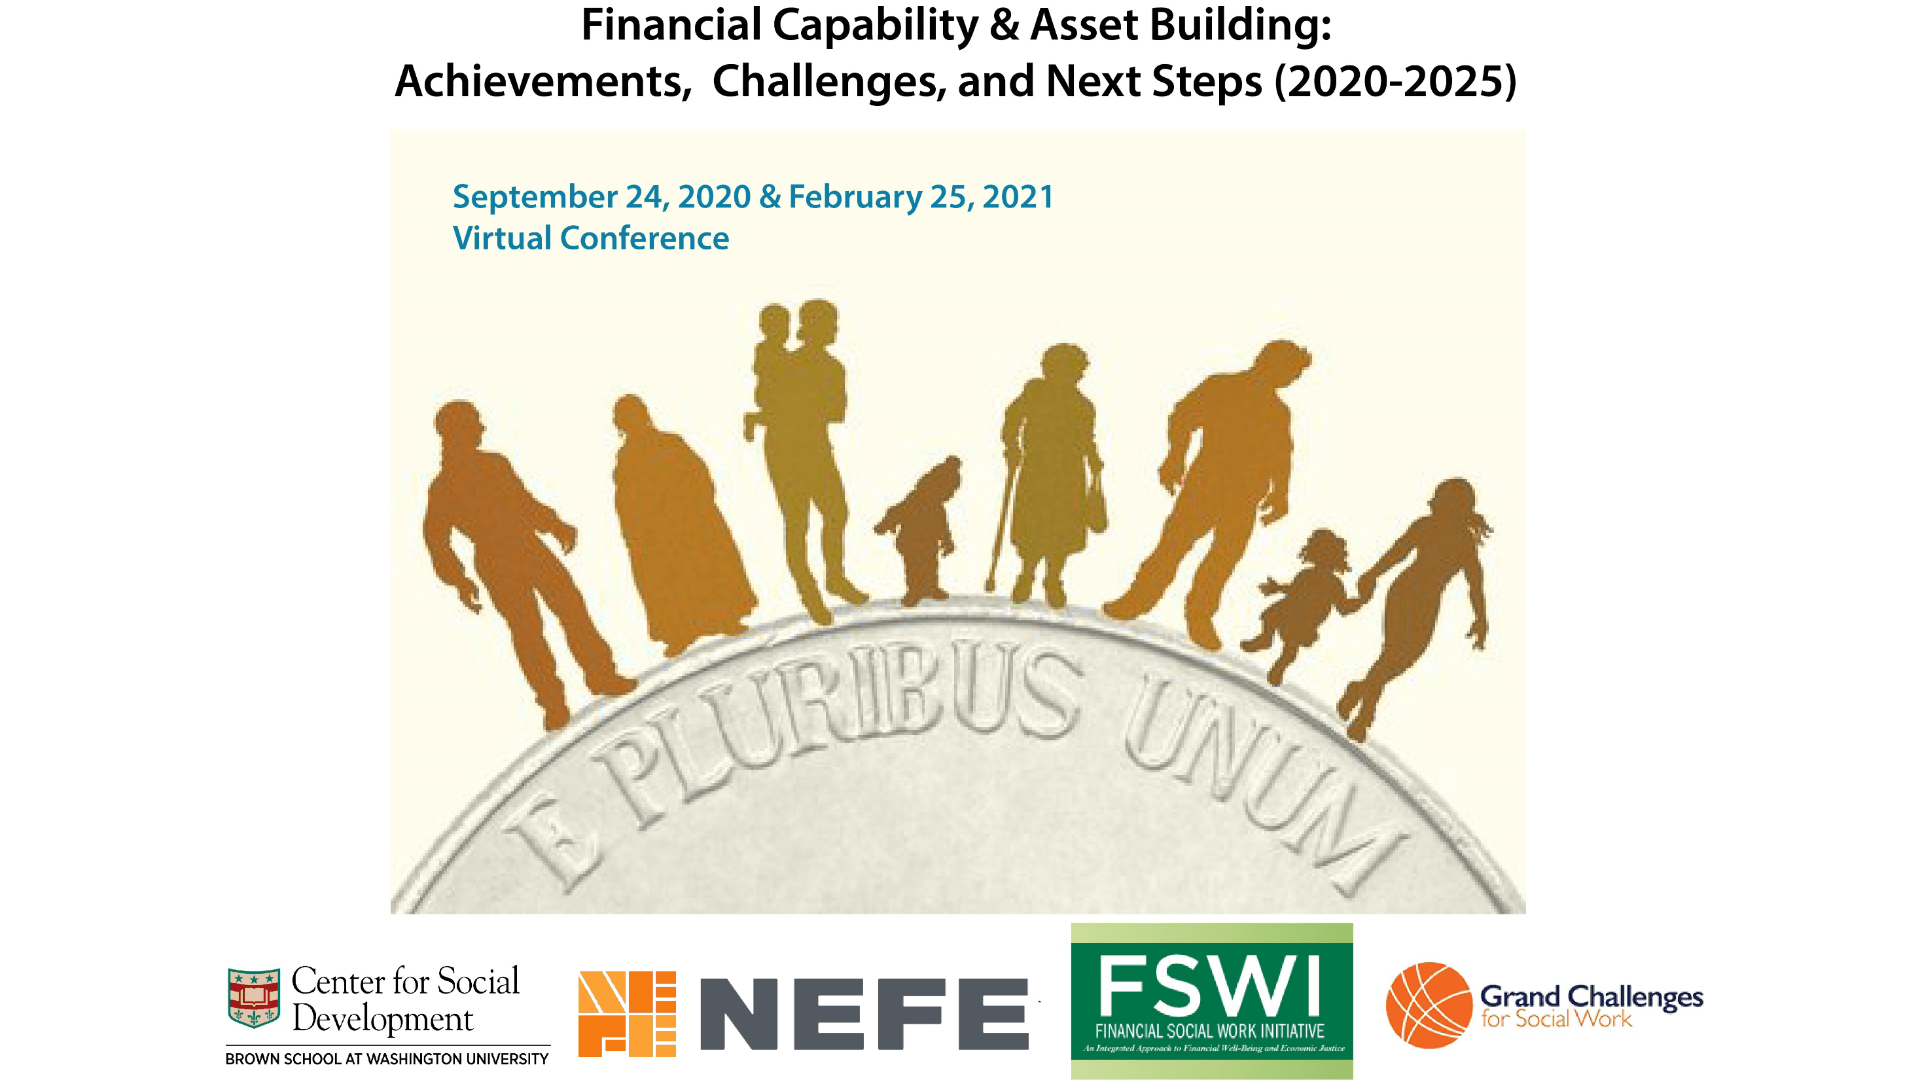 Financial Capability and Asset Building: Achievements, Challenges, and Next Steps